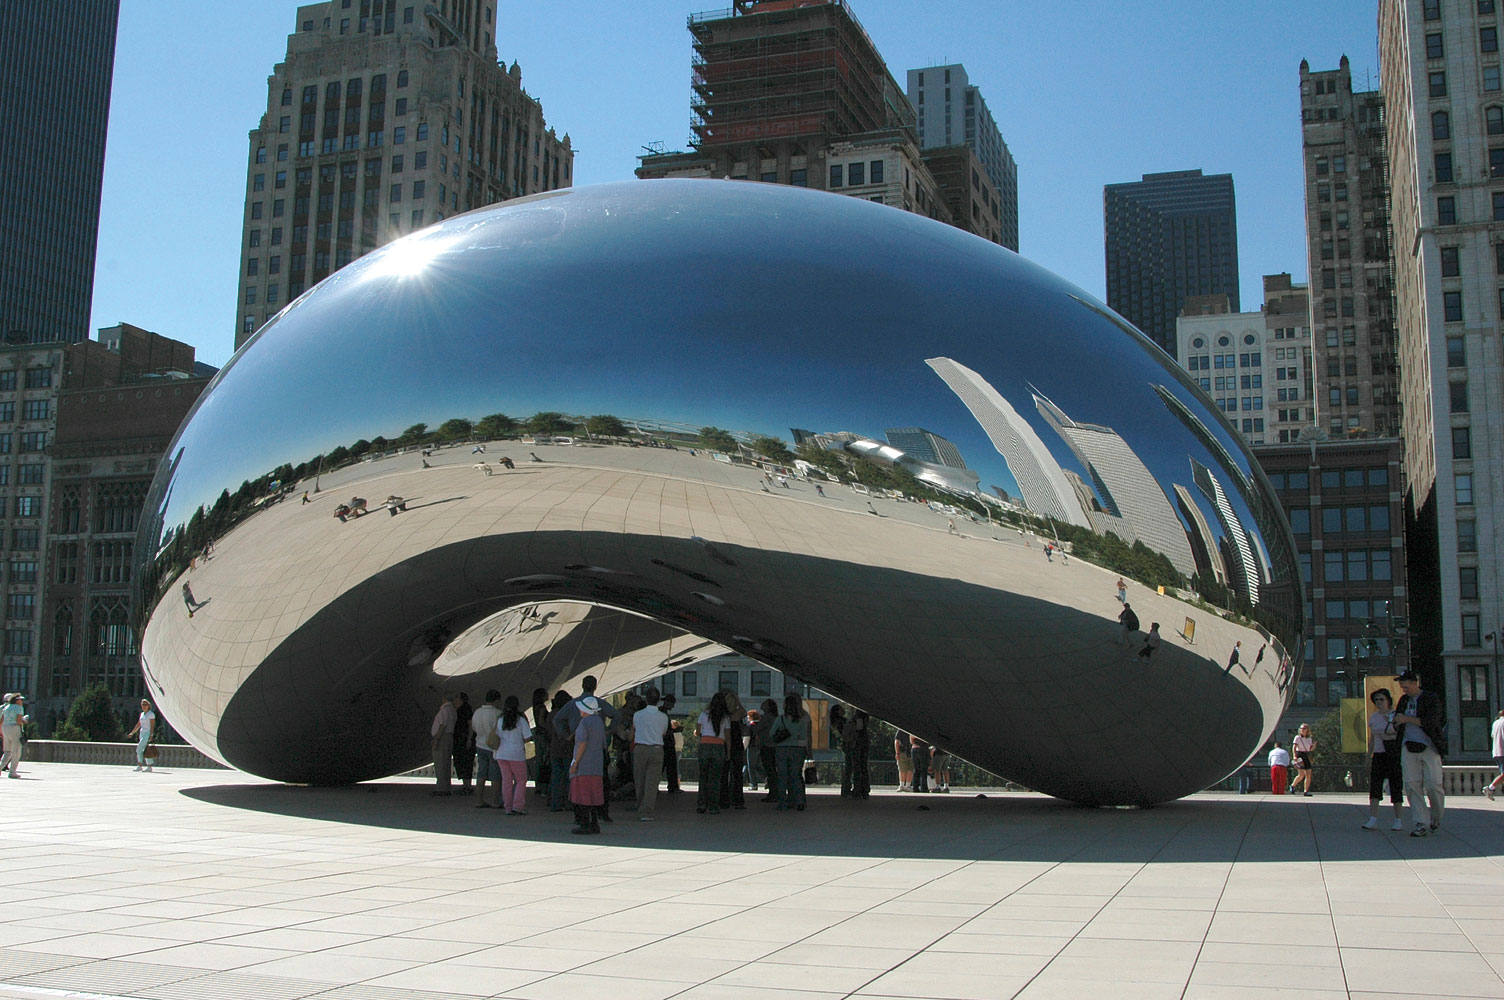 Cloud Gate - Anish Kapoor